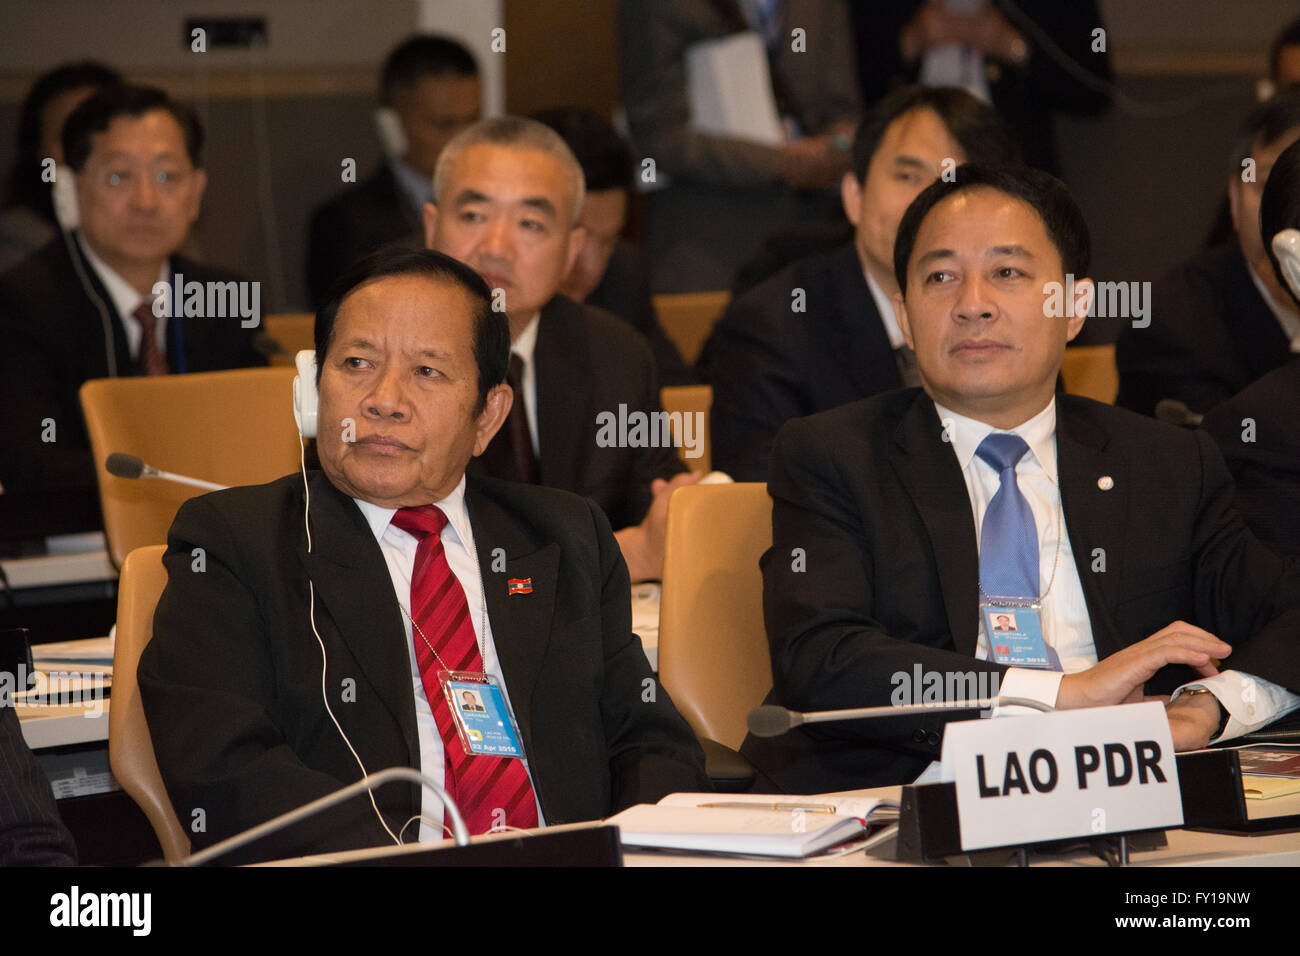 New York, USA. 19th April 2016.  Members of the Laotian delegation watch the UN Office on Drugs and Crime presentation - Stock Image